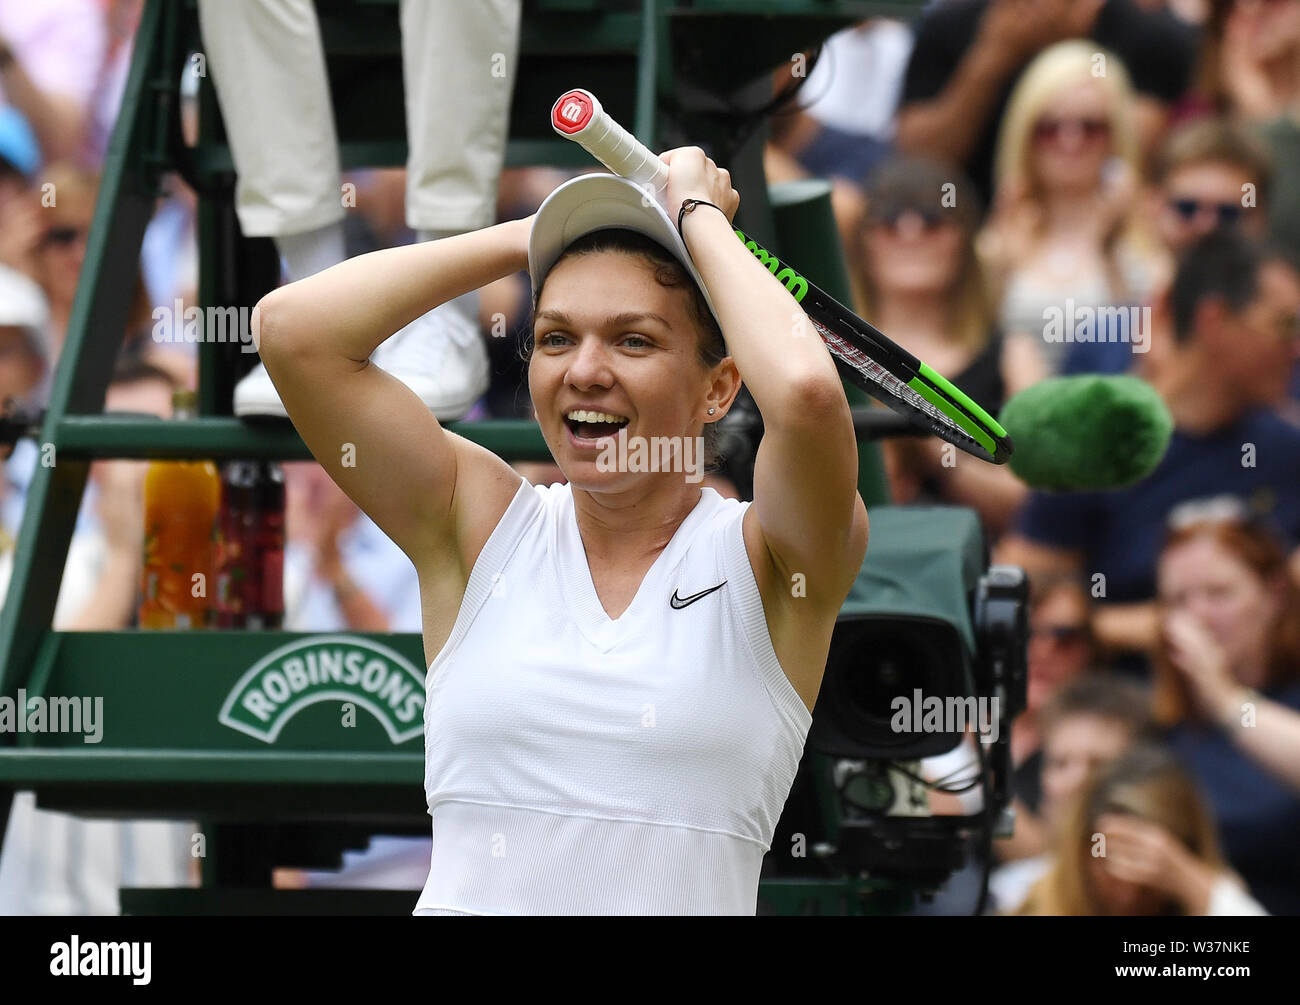 London, UK. 13th July, 2019. The Championships Wimbledon 2019 13072019 Simona Halep celebrates as she wins Ladies Singles Final Credit: Roger Parker/Alamy Live News - Stock Image